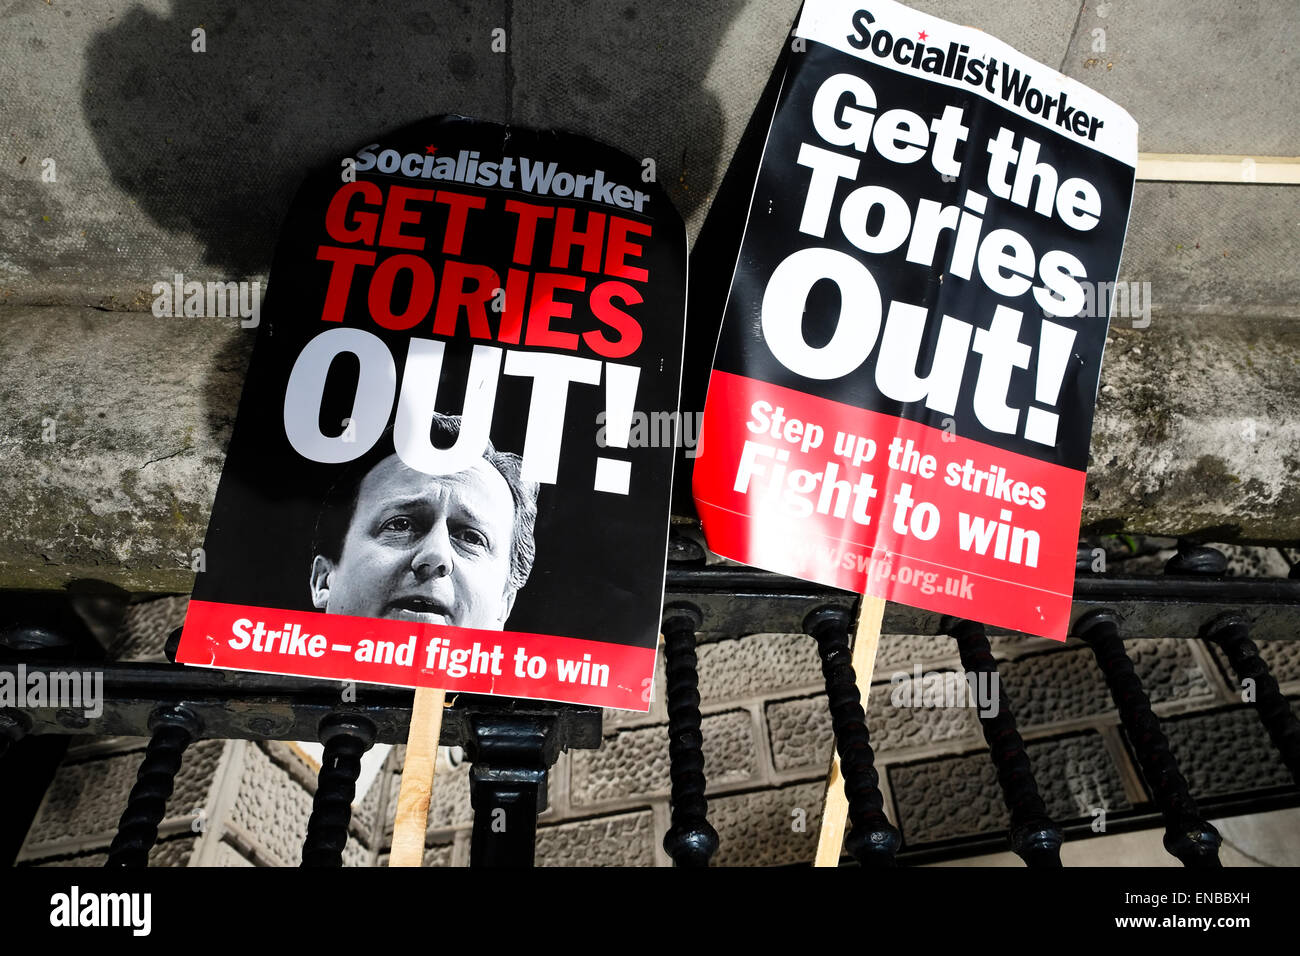 Tories Out - Stock Image